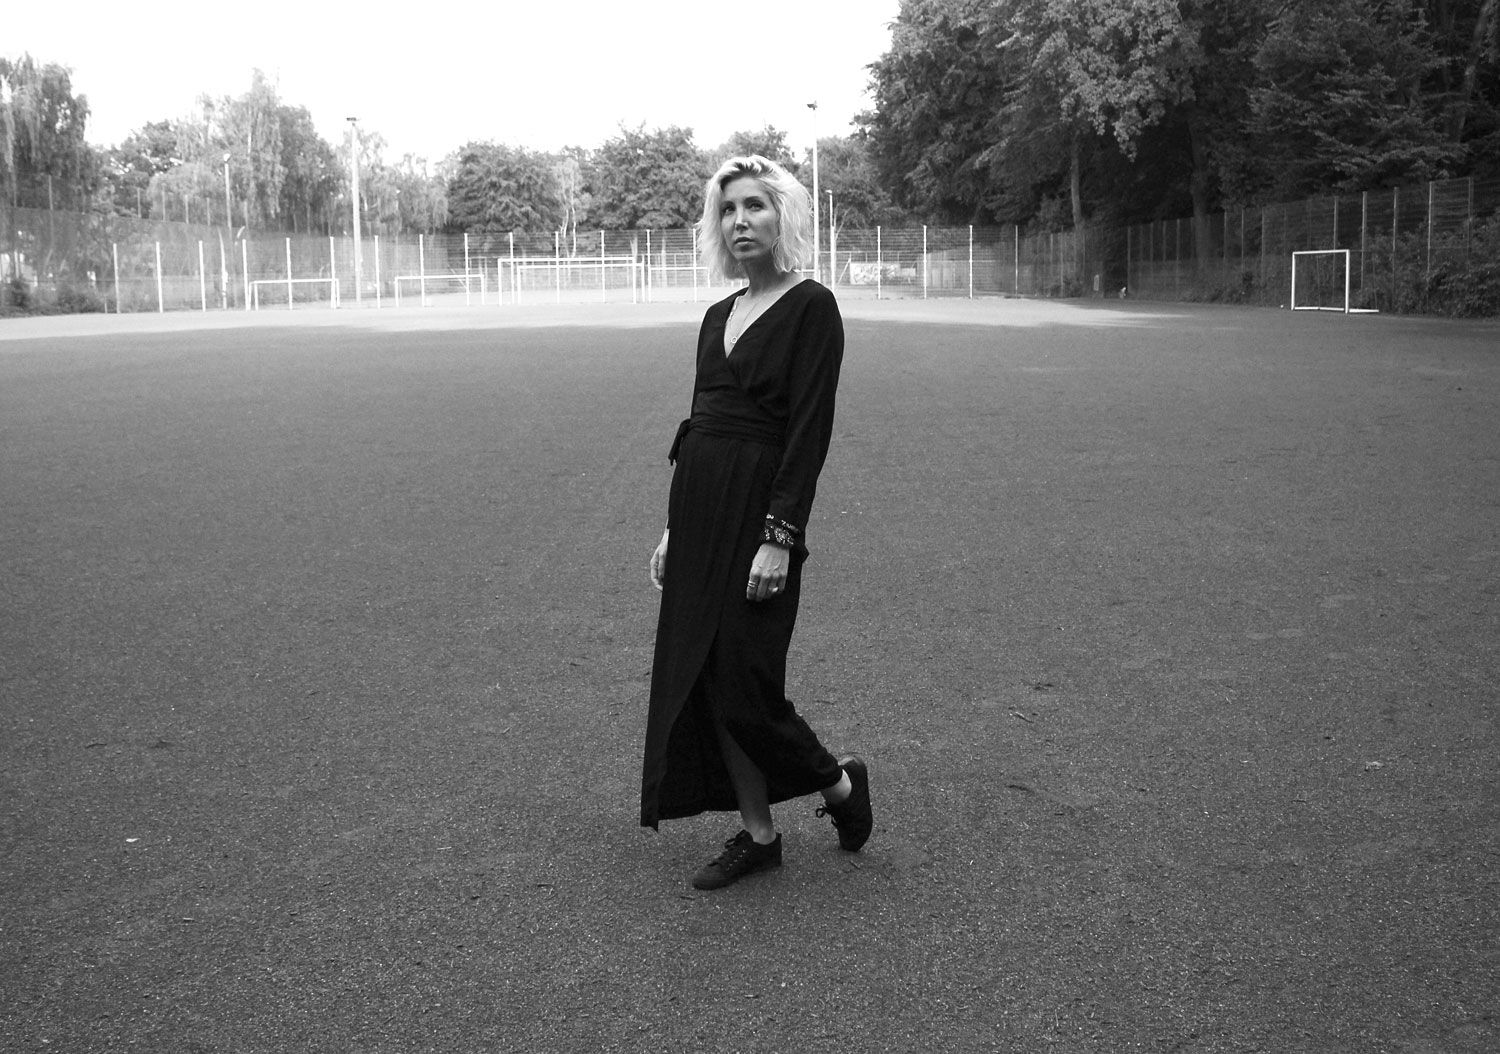 DEF Shop, Swag, Bandana, Sneaker, Adidas, All Black, H&M Trend, lotd, Look, ootd, Outfit, Style, Fashion, Blog, stryleTZ